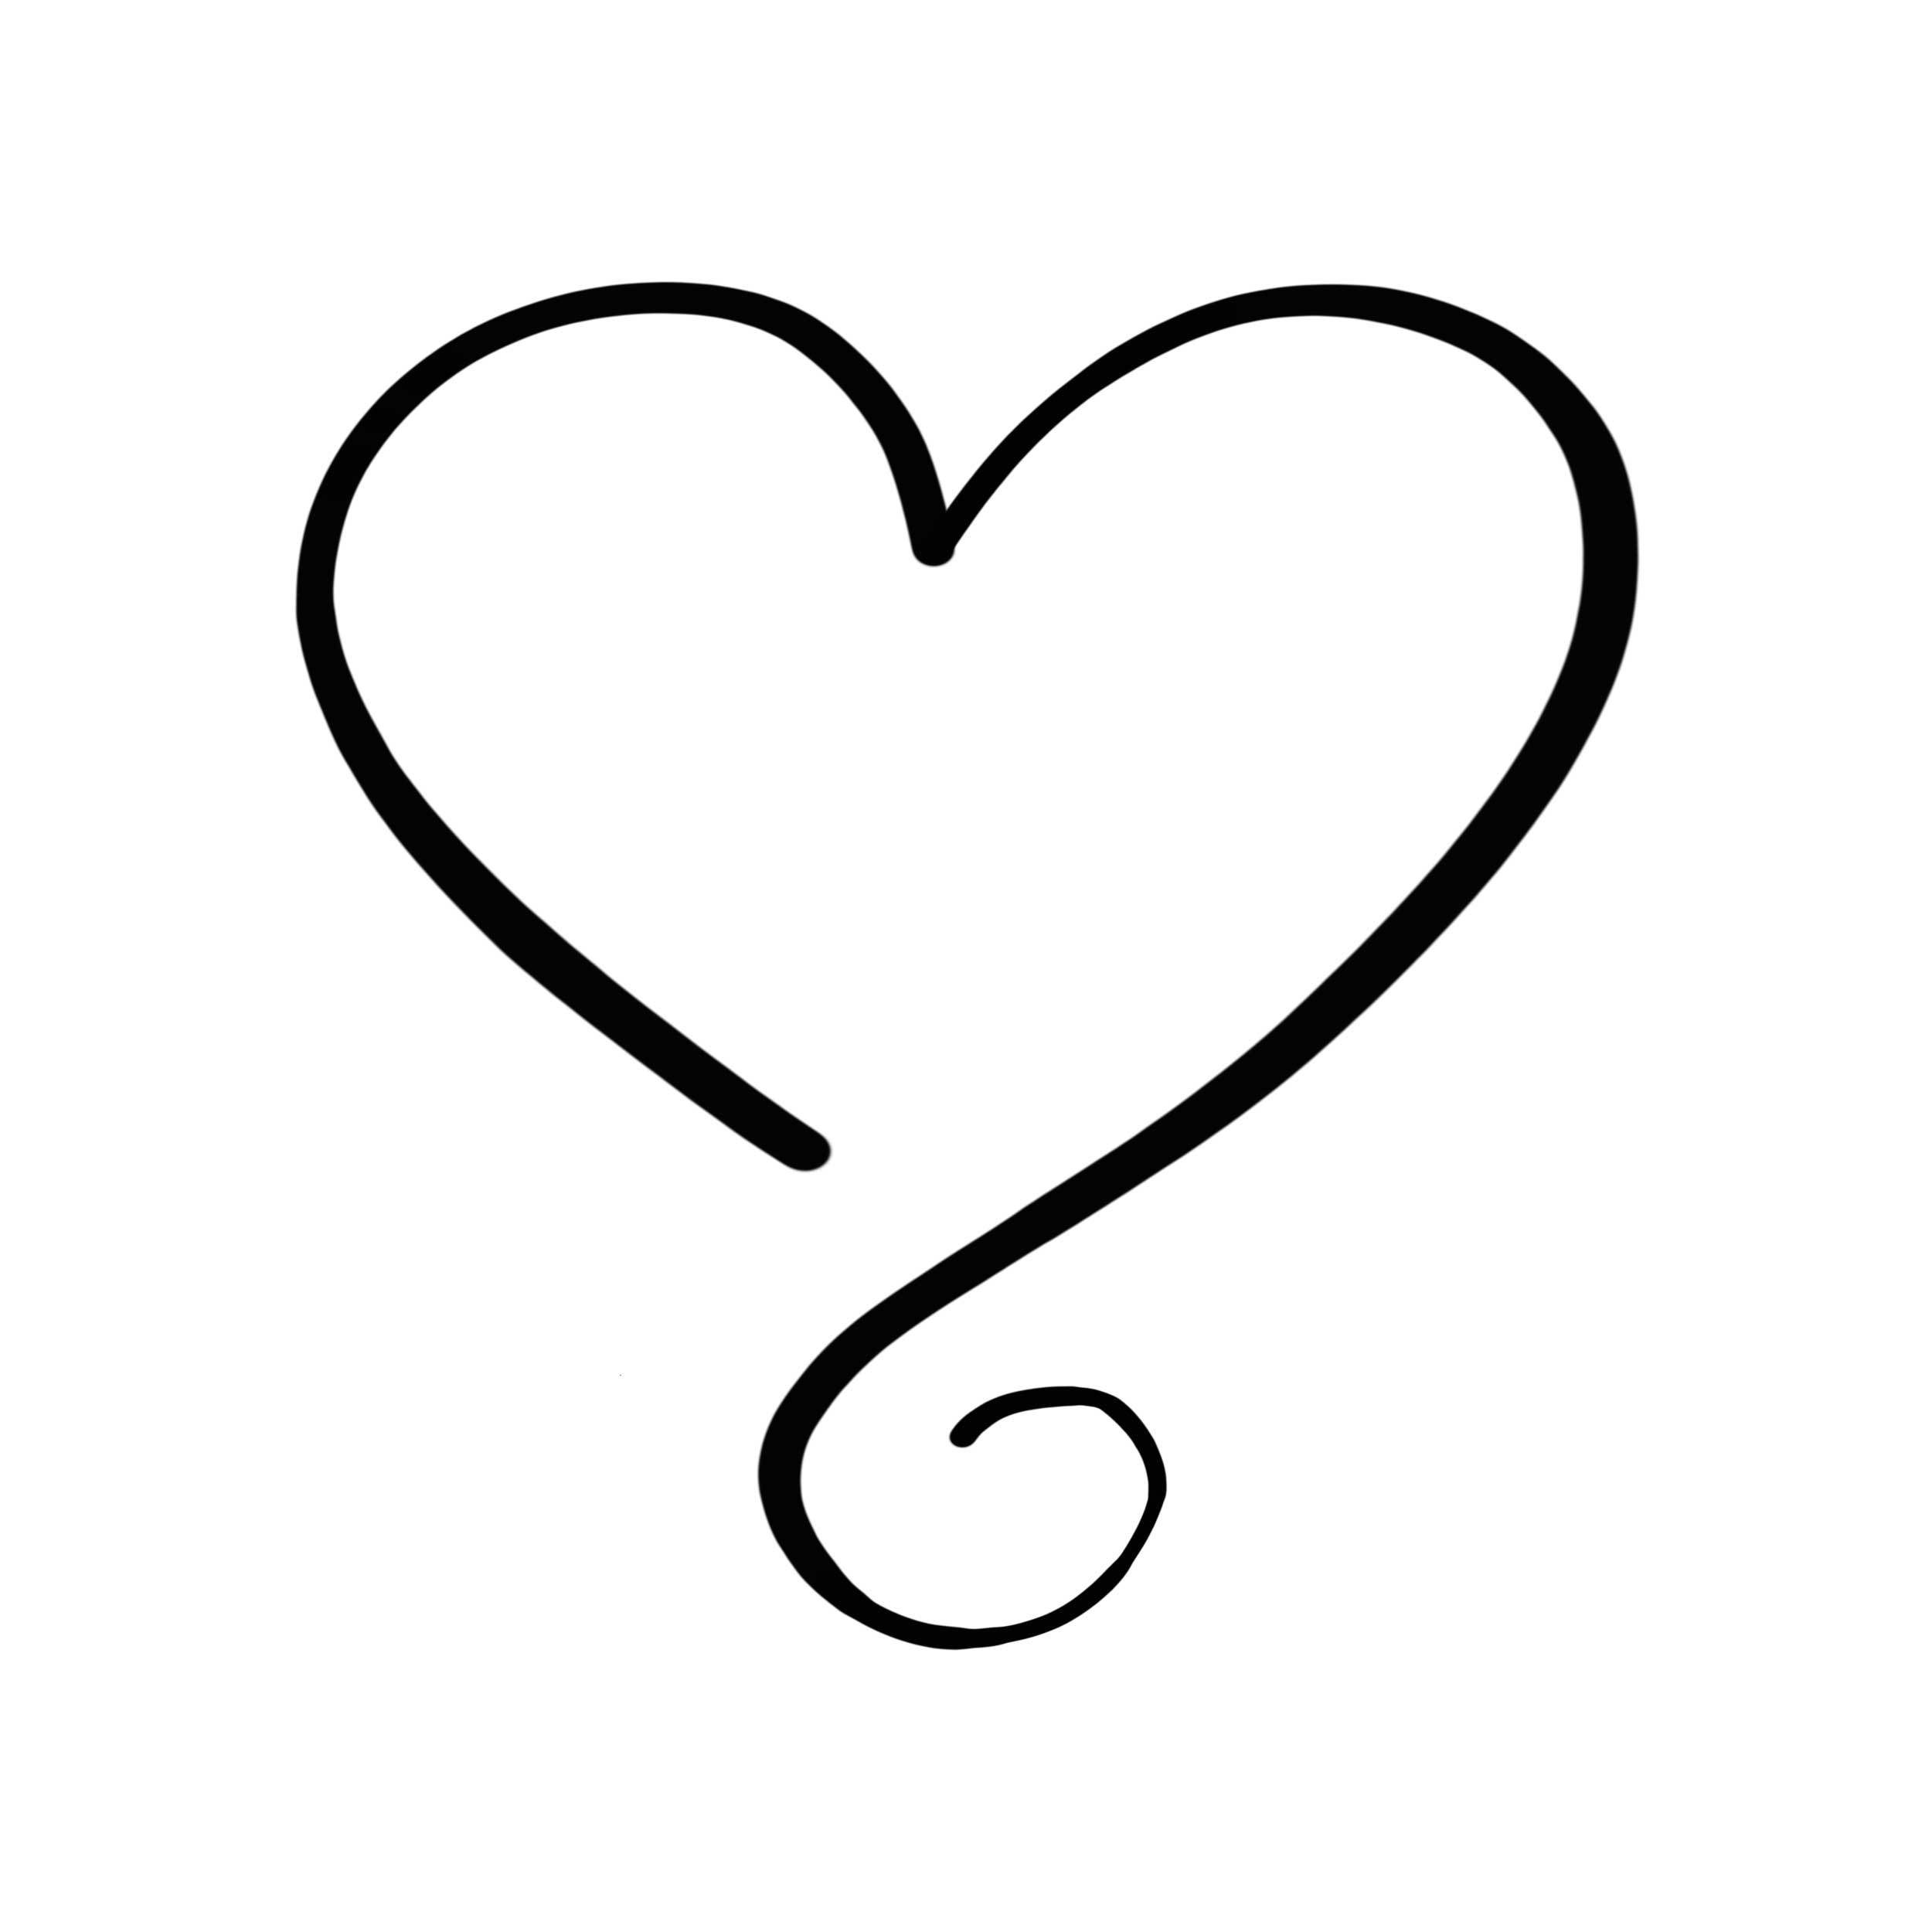 Heartline Temporary Tatoo Design. Tags: Minimal, Black and White, Traditional,